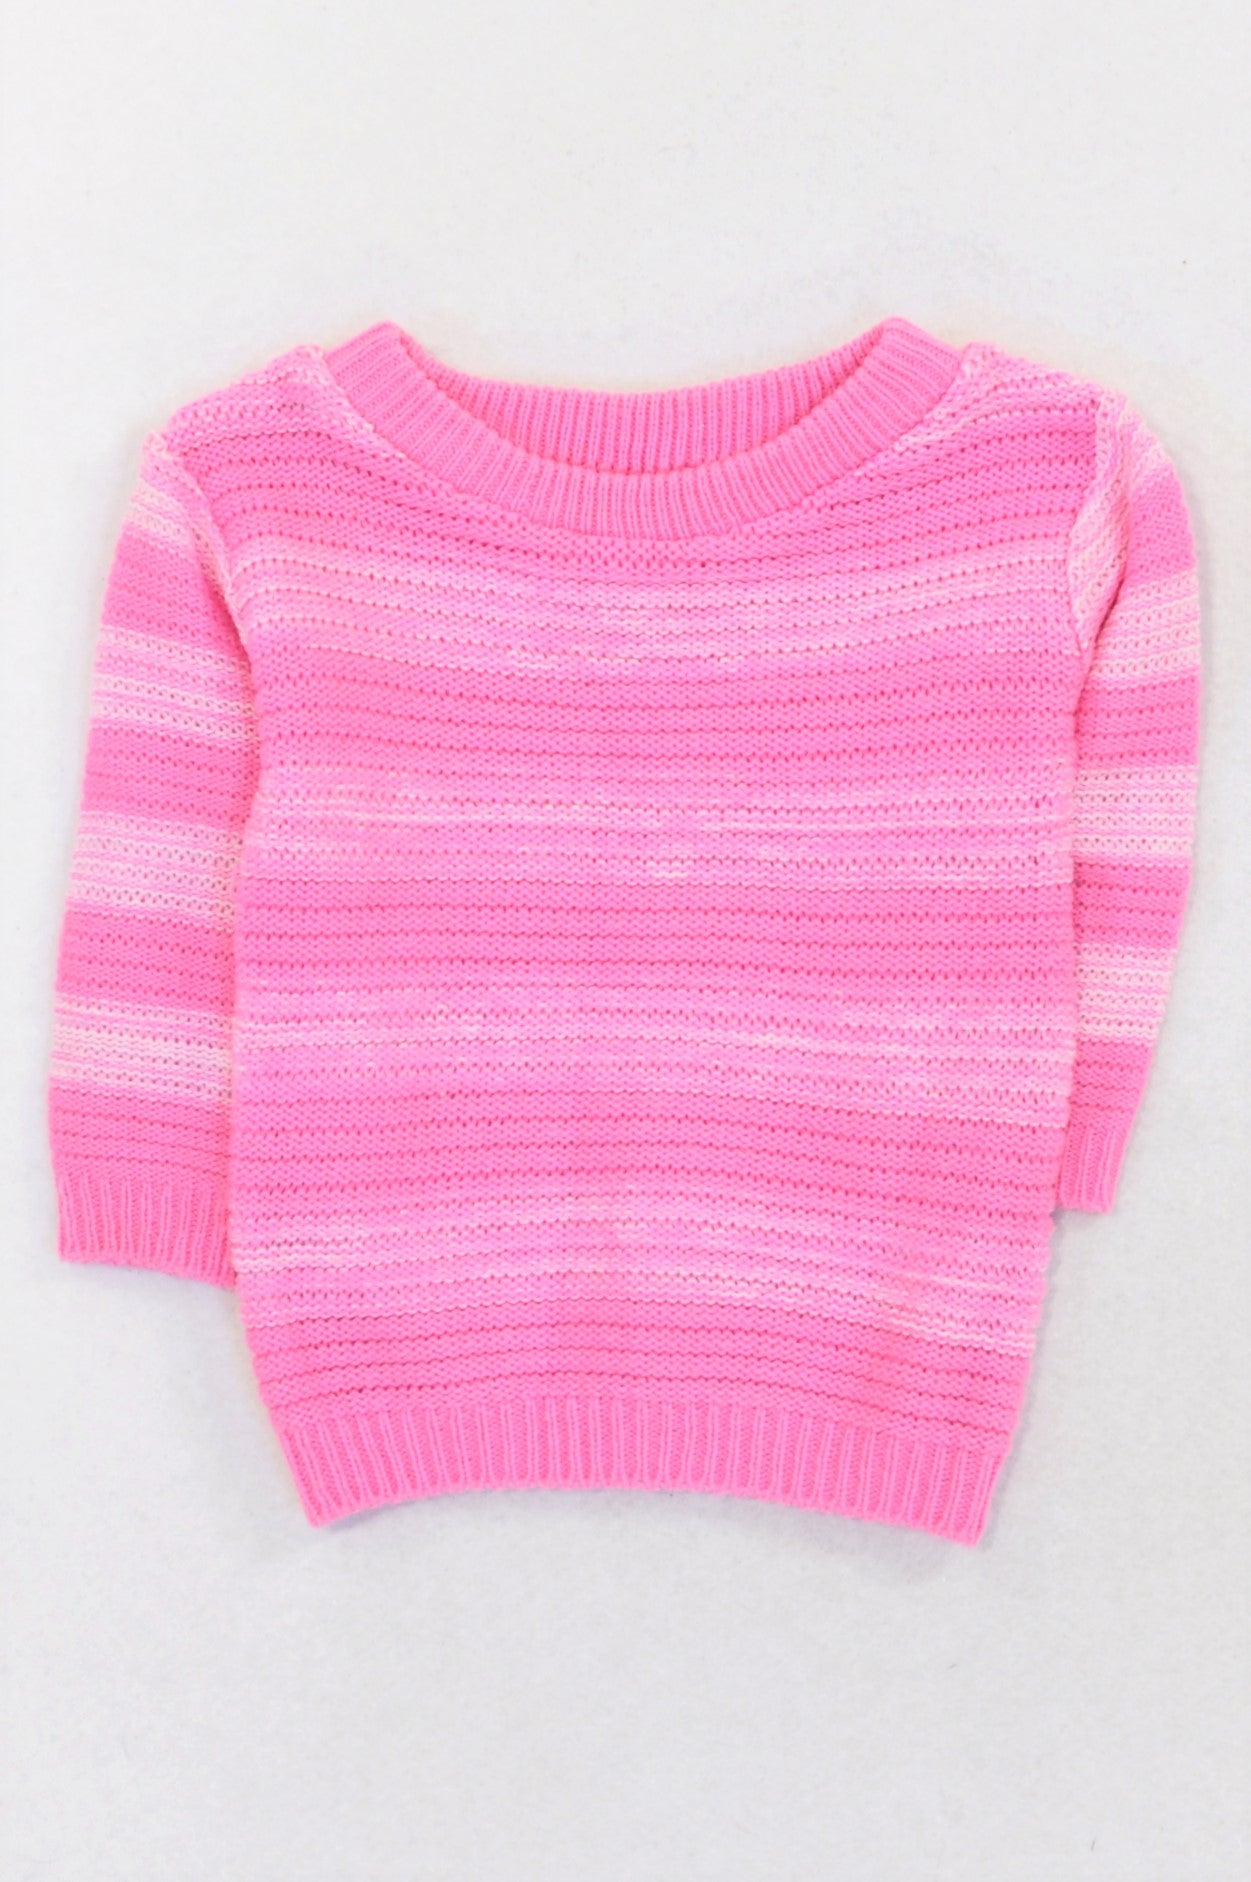 Ackermans Rose Pink & White Knit Lightweight Jersey Girls 3-6 months